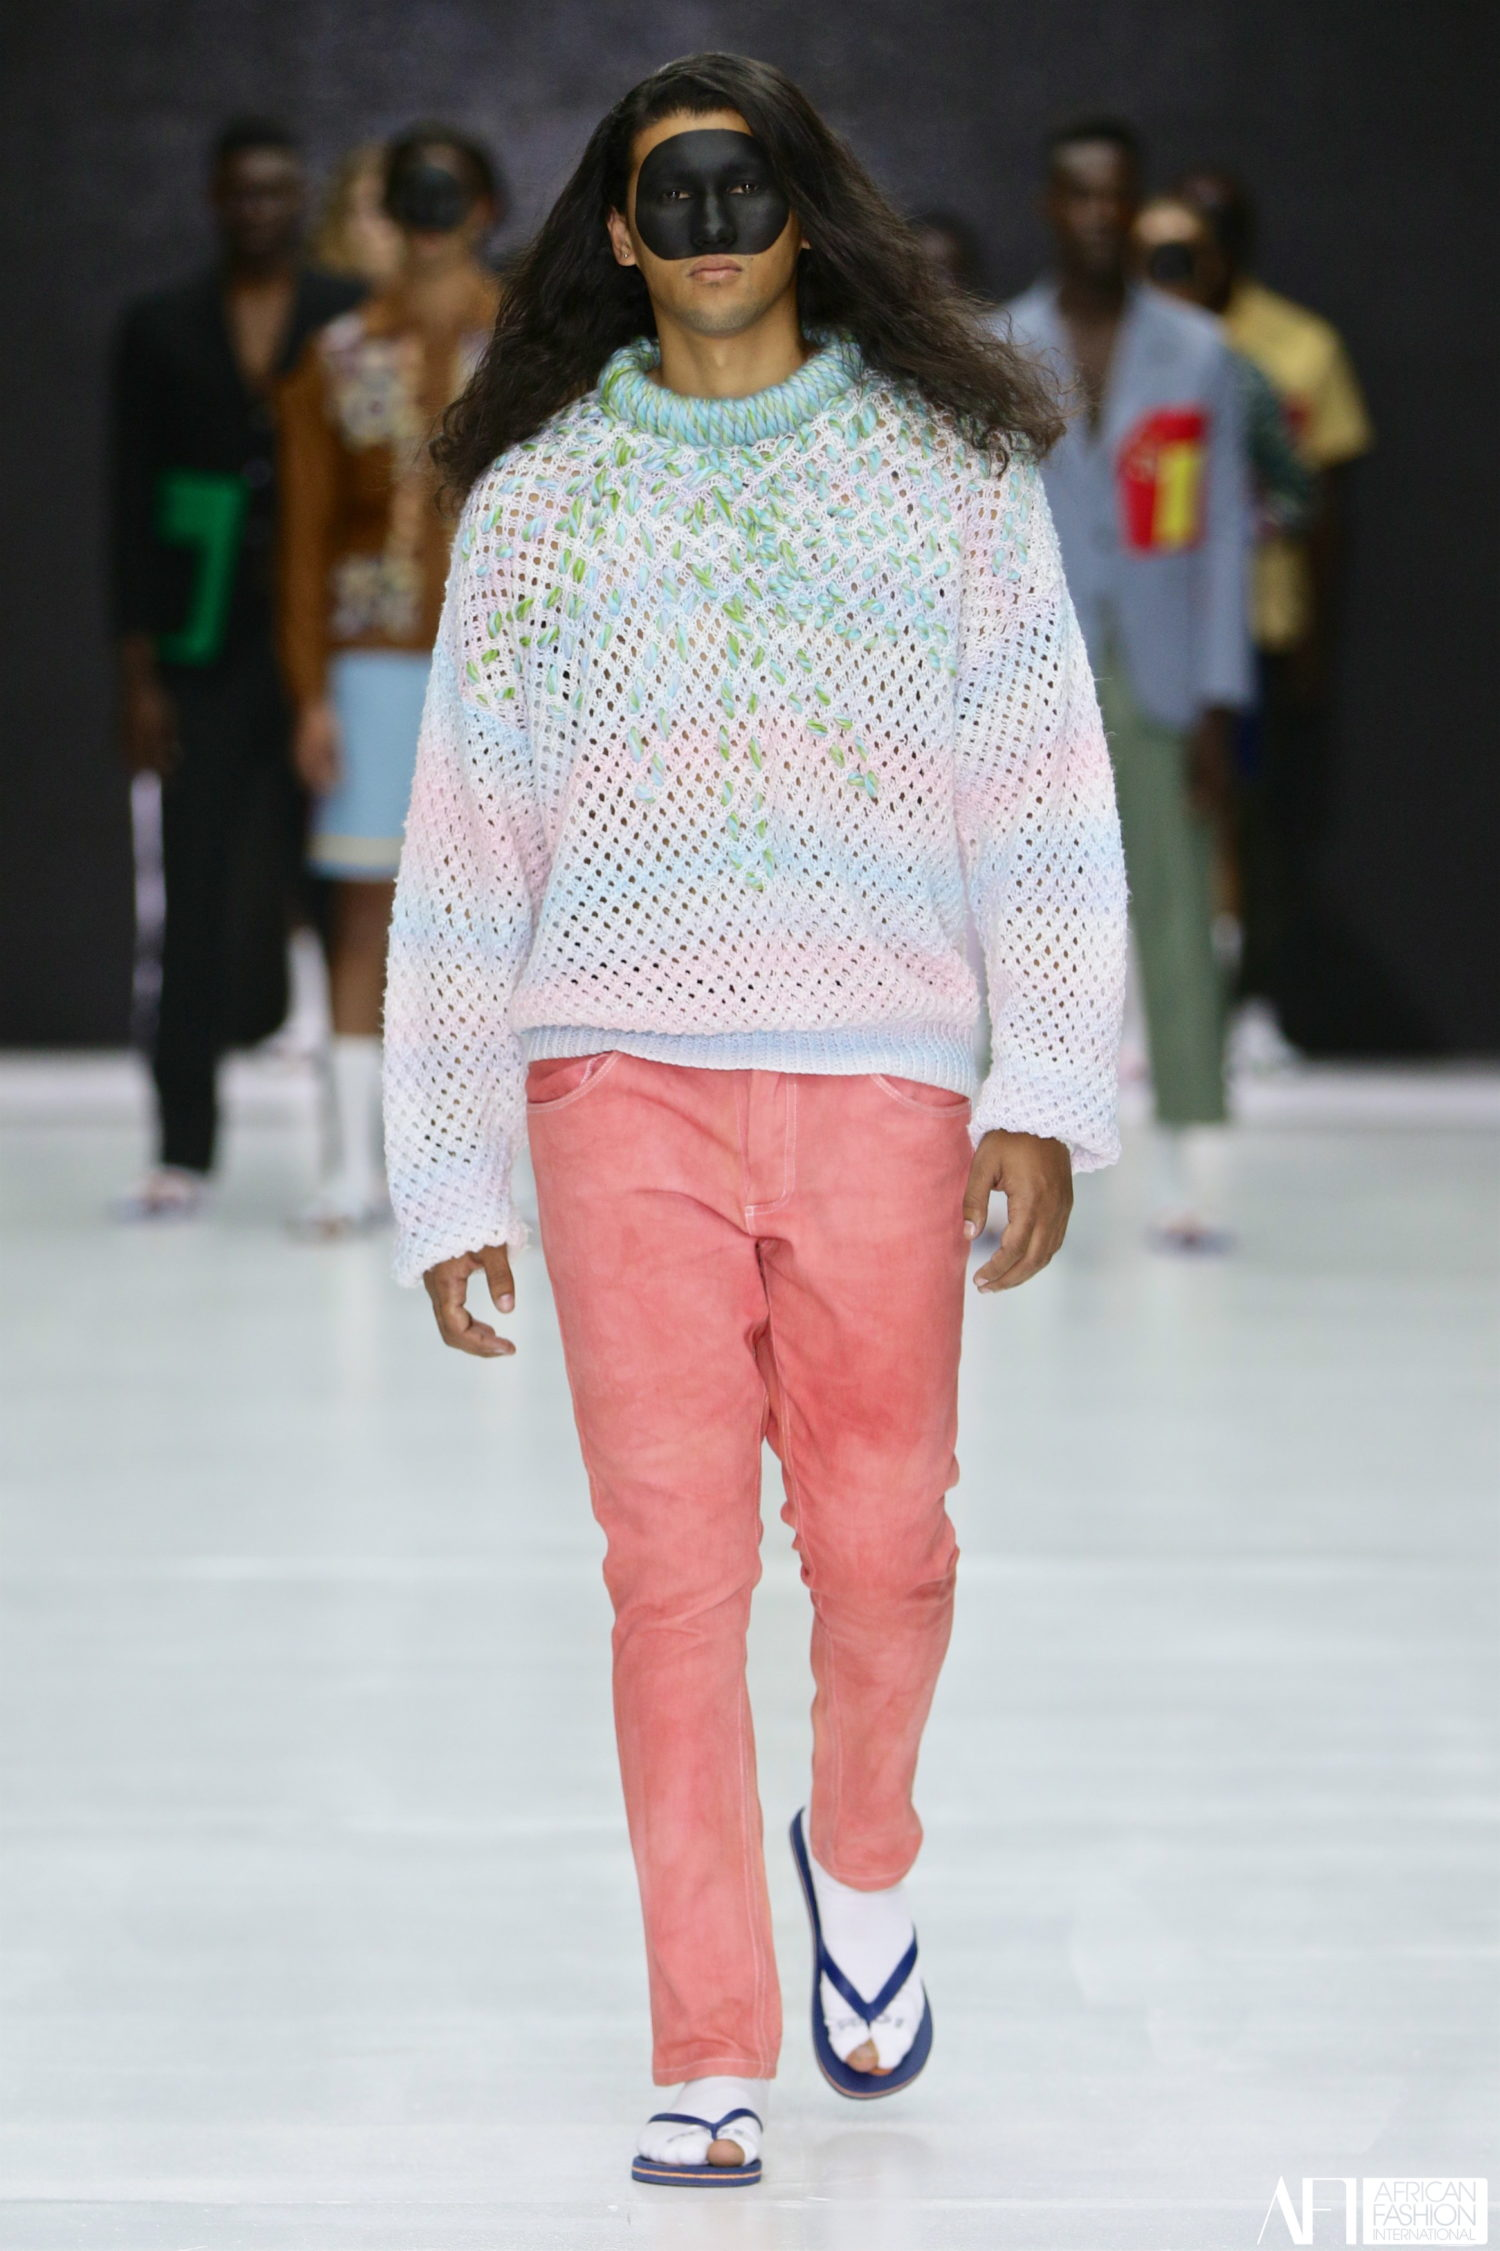 #AFICTFW19 | AFI Capetown Fashion Week Messrs Basswood